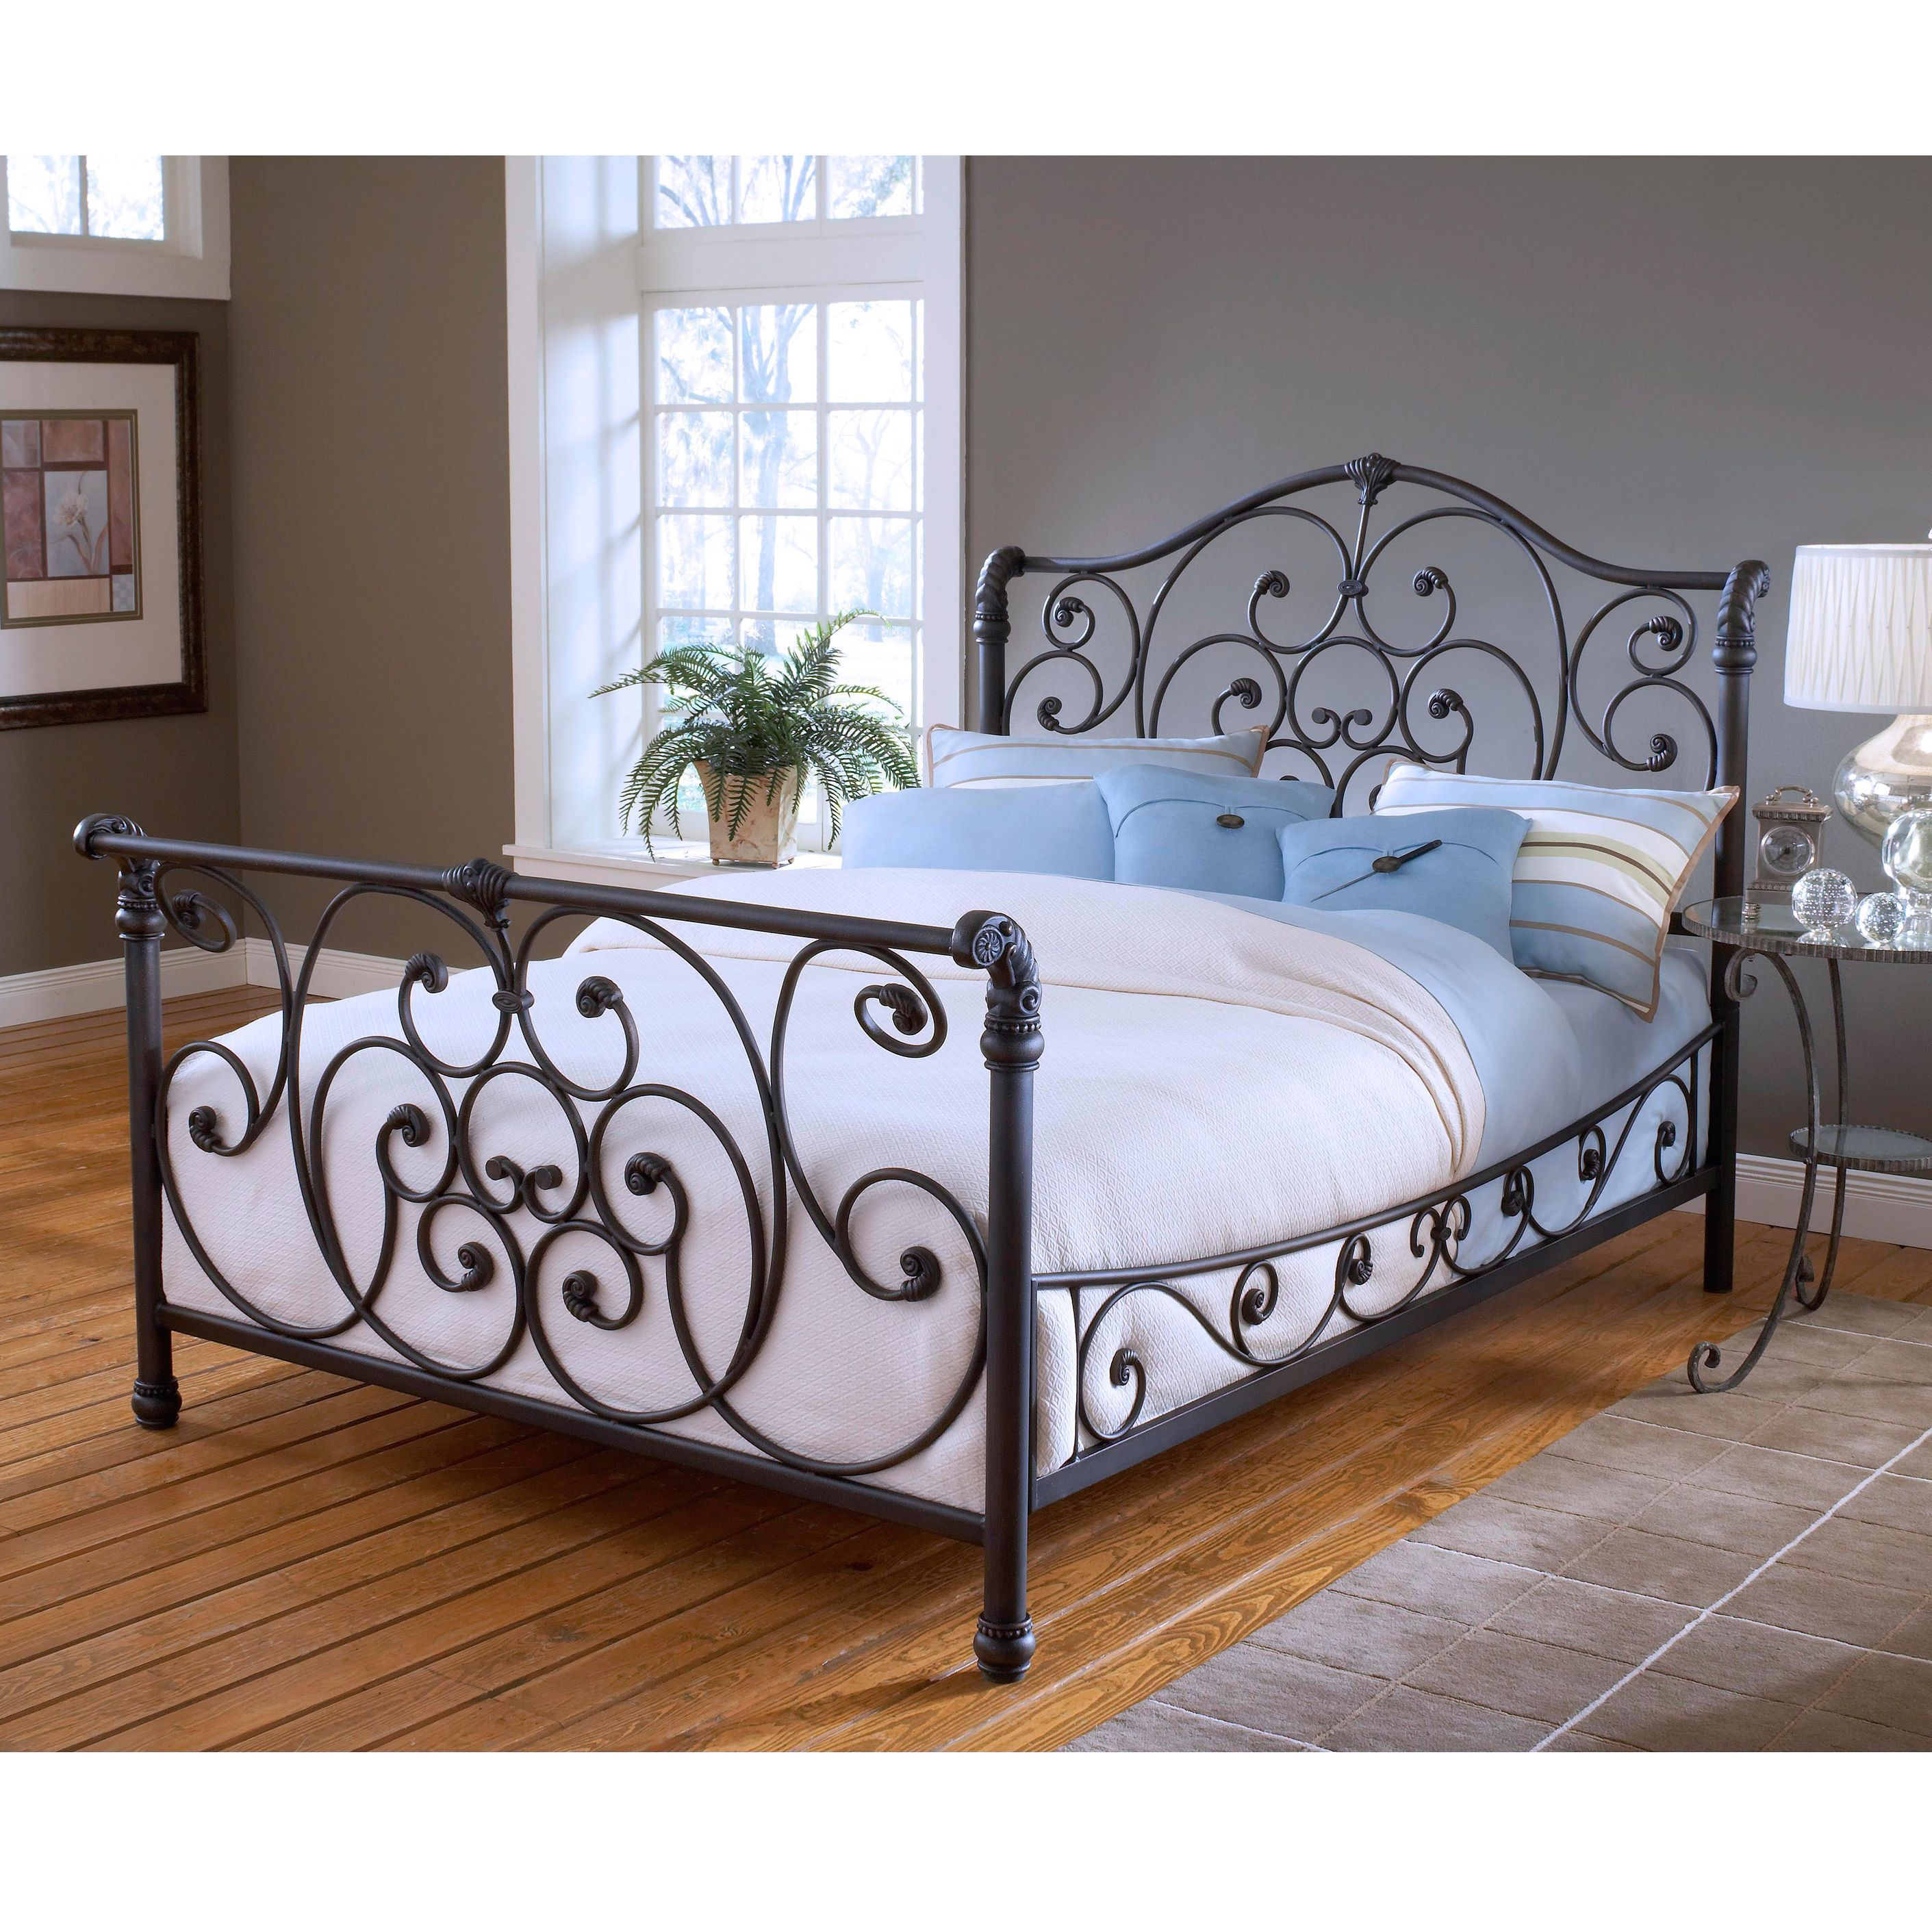 split with headboard bed base metal and mattress footboard platt beds adjustable king leggett sleep science best frame